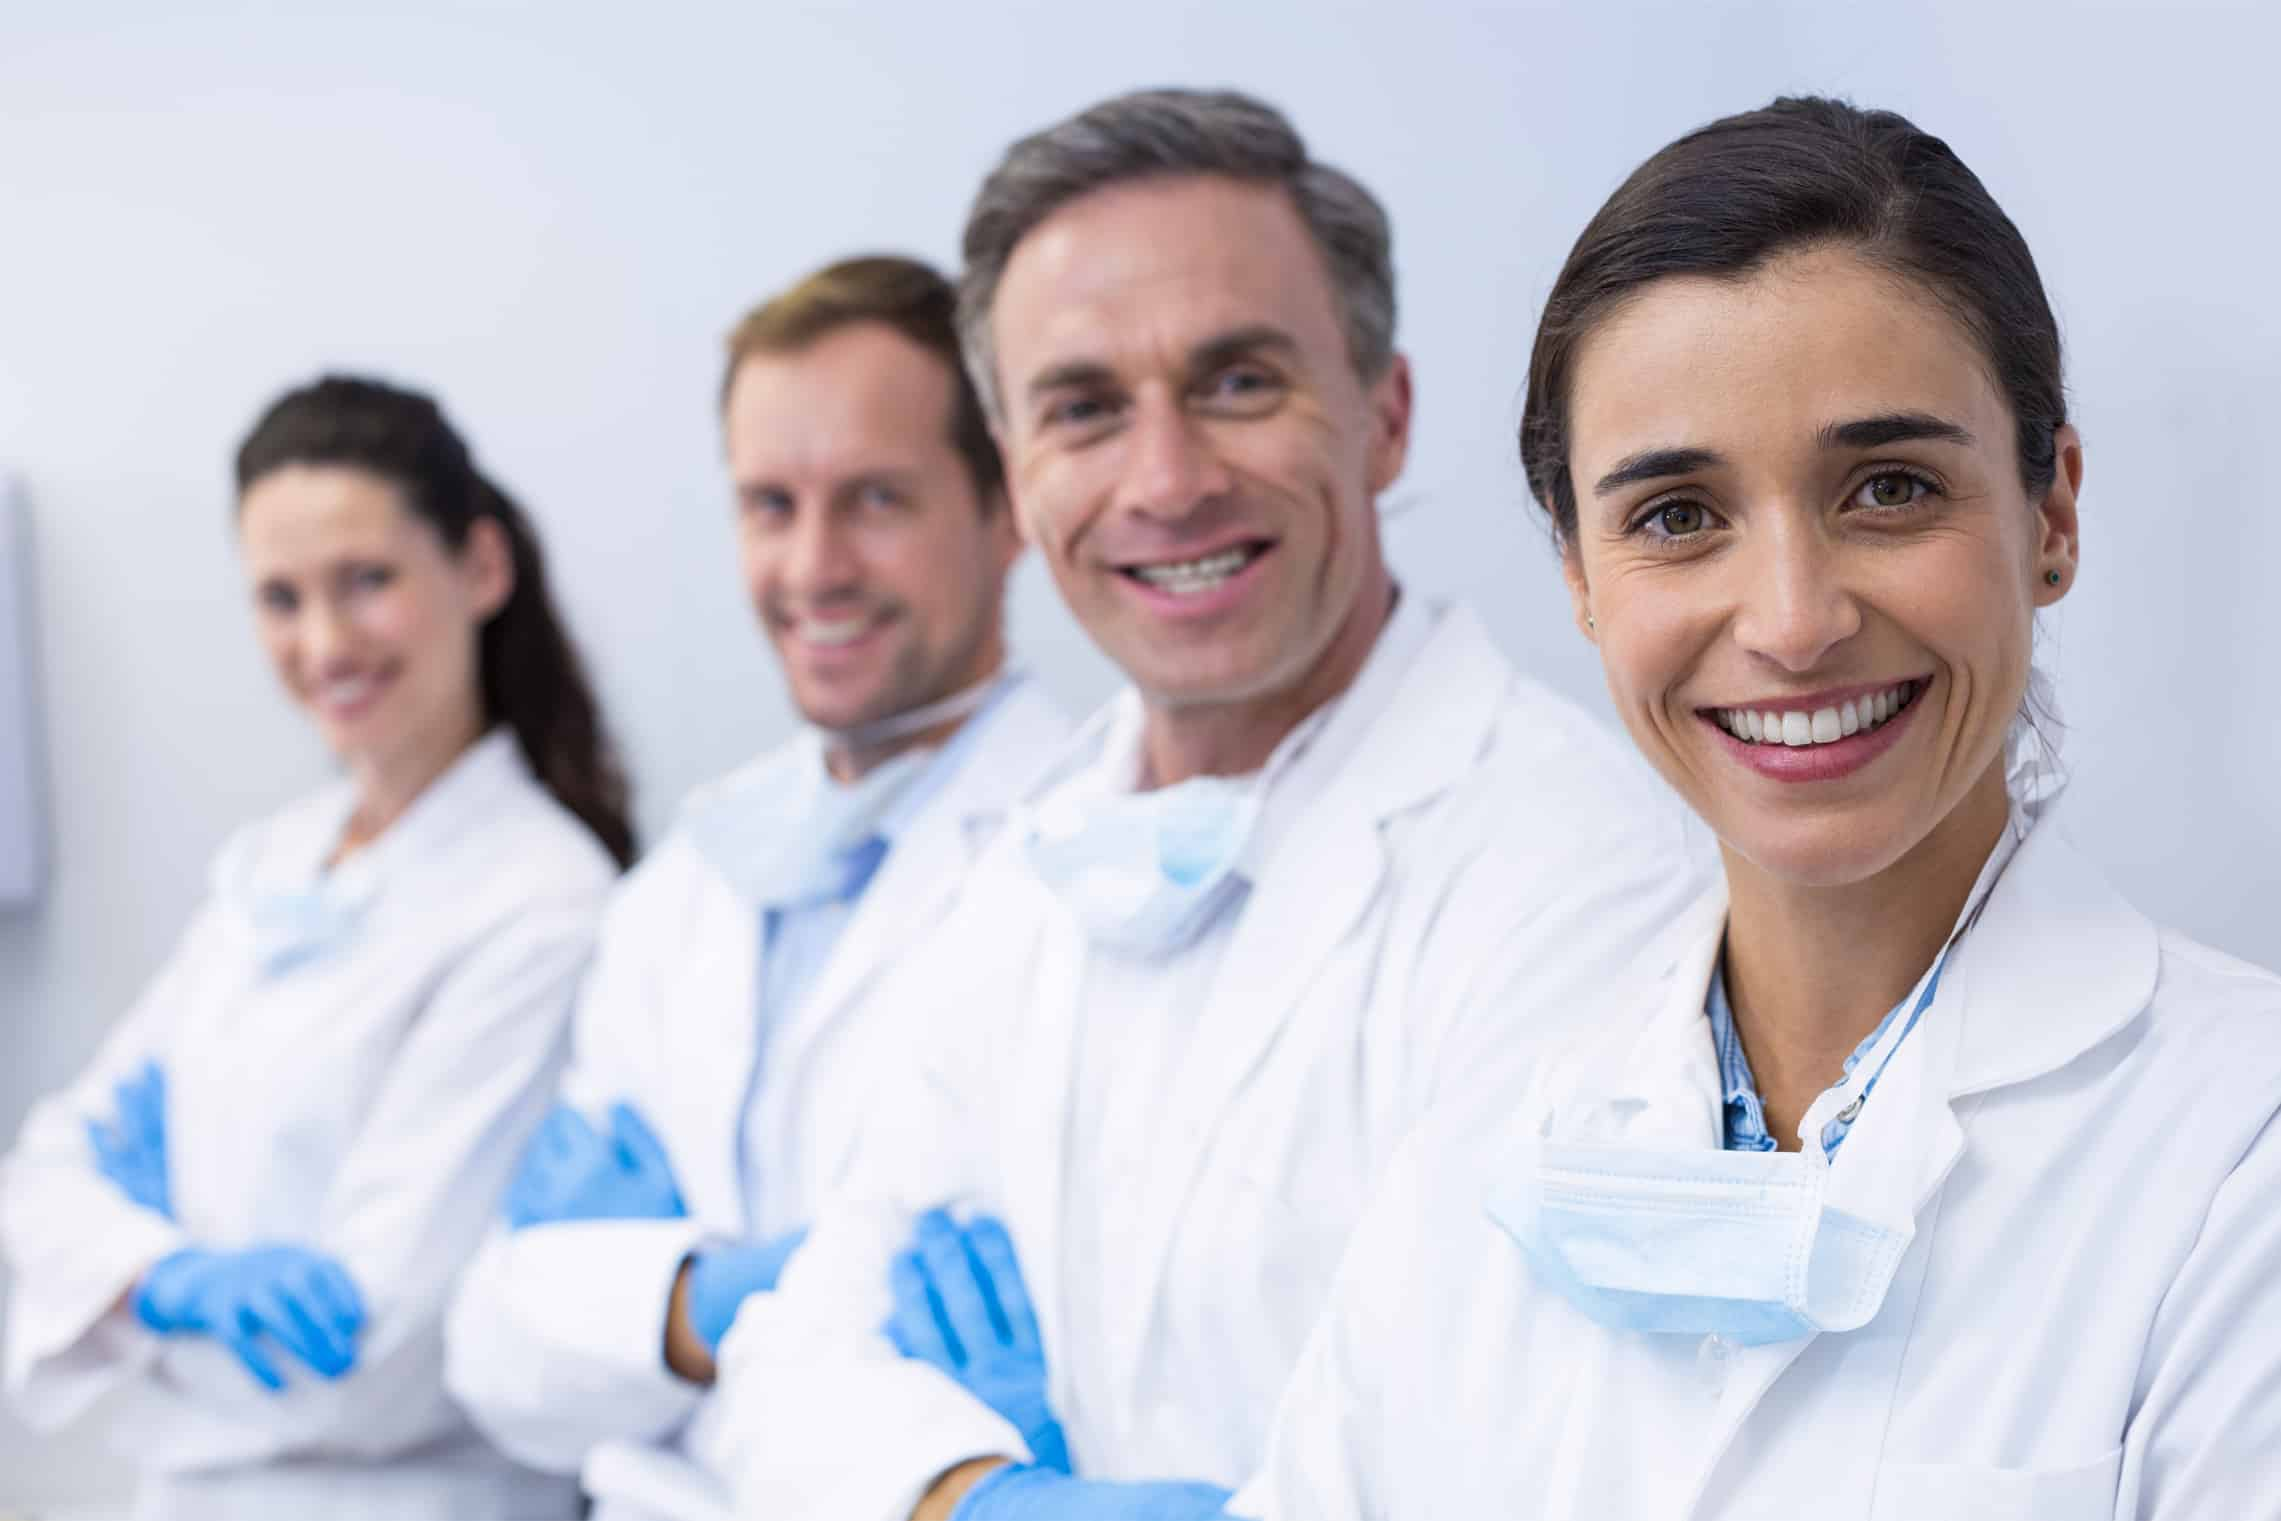 About Aligners USA